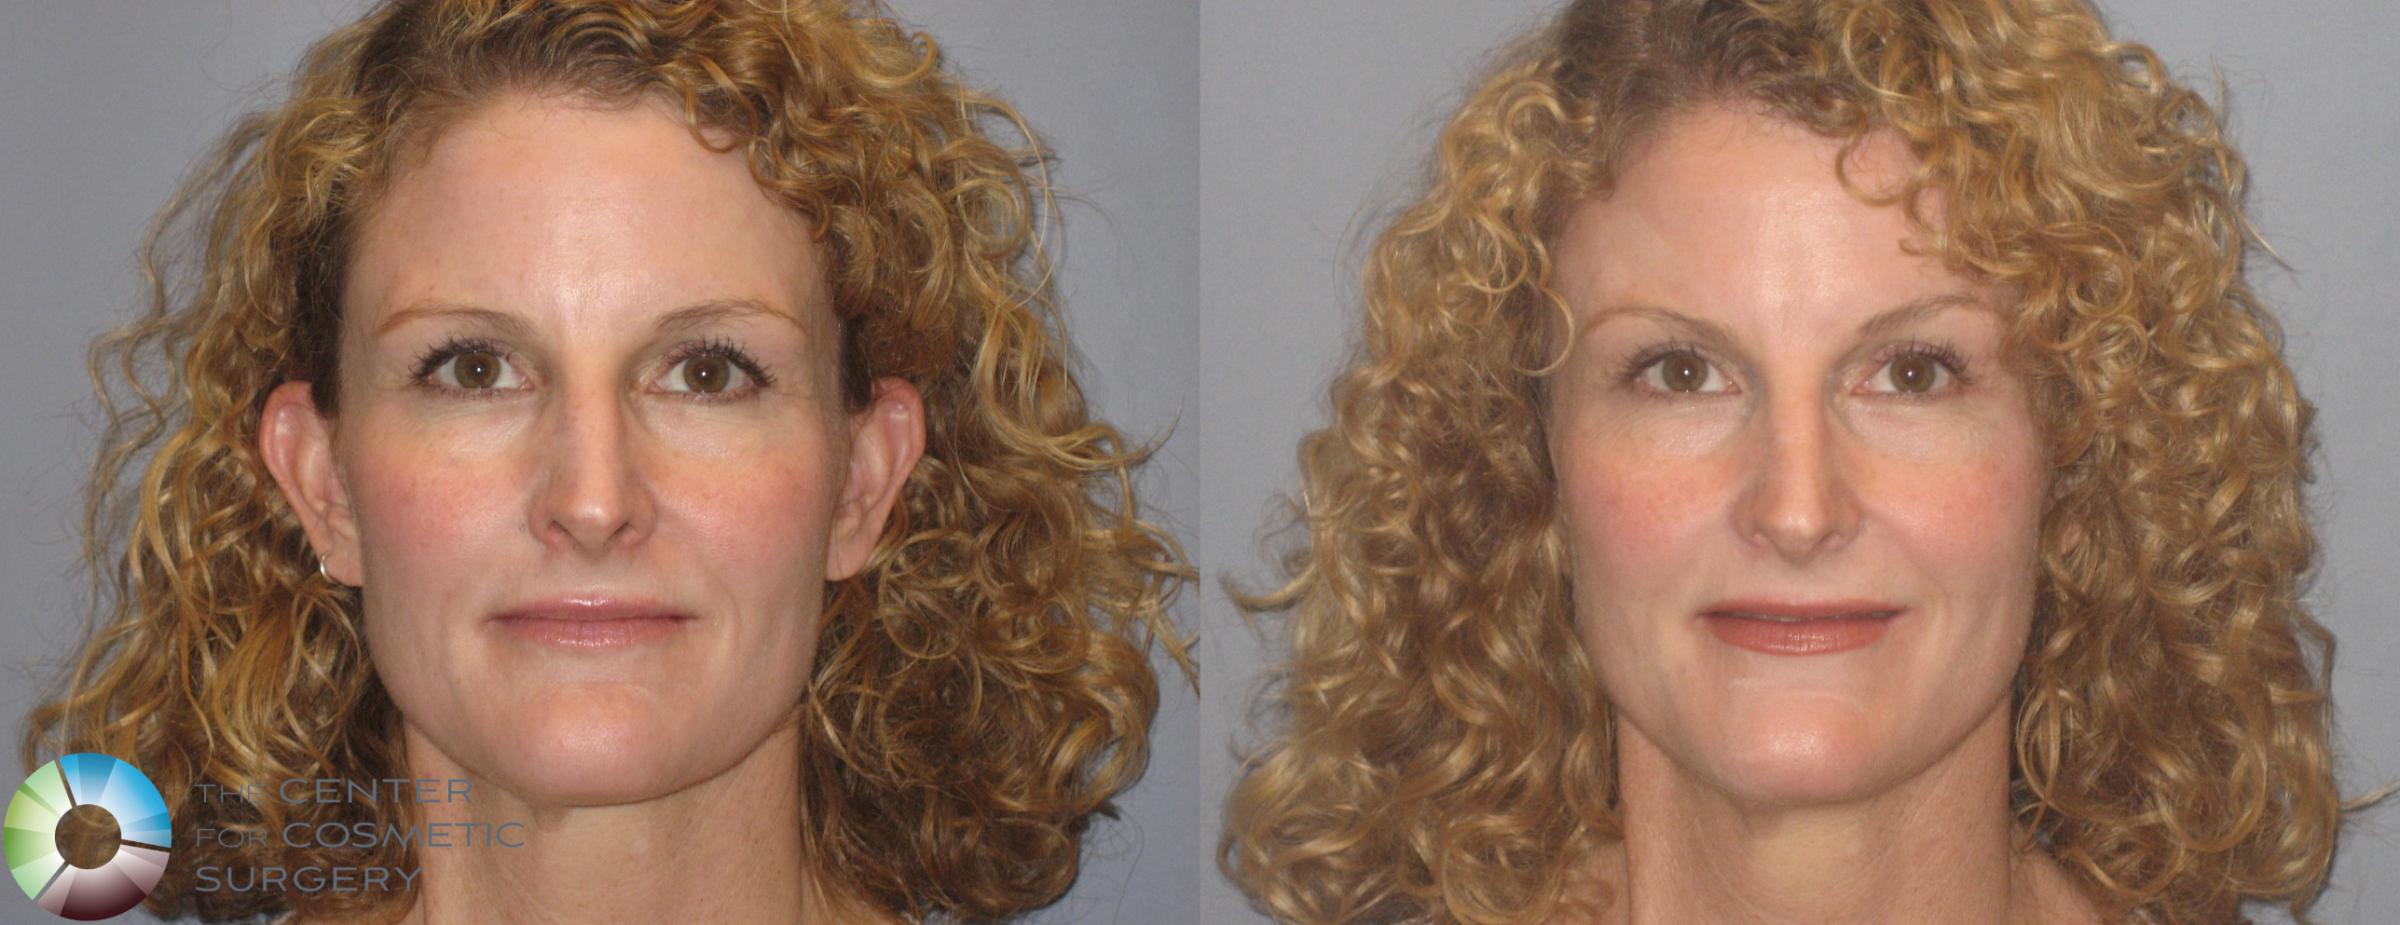 Mini Brow Lift Case 251 Before & After View #1 | Golden, CO | The Center for Cosmetic Surgery